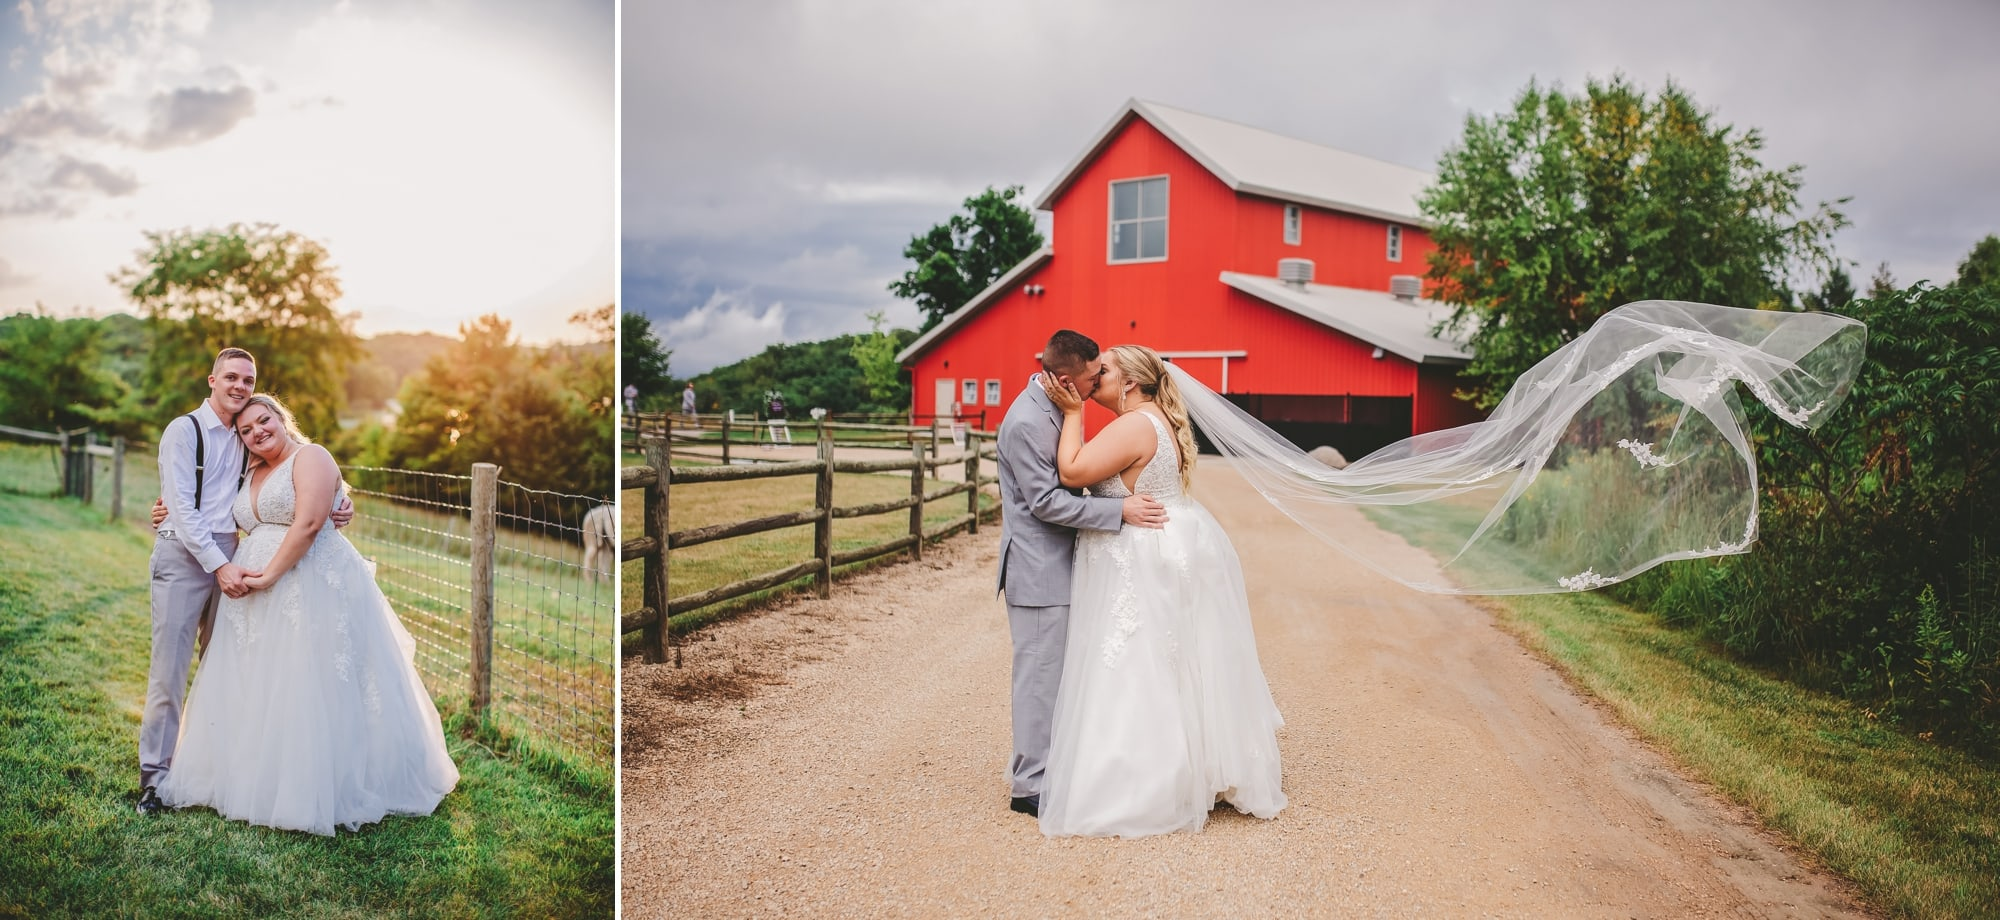 Bride and groom portraits at Gale Woods Farm in Minnetrista, Minnesota.